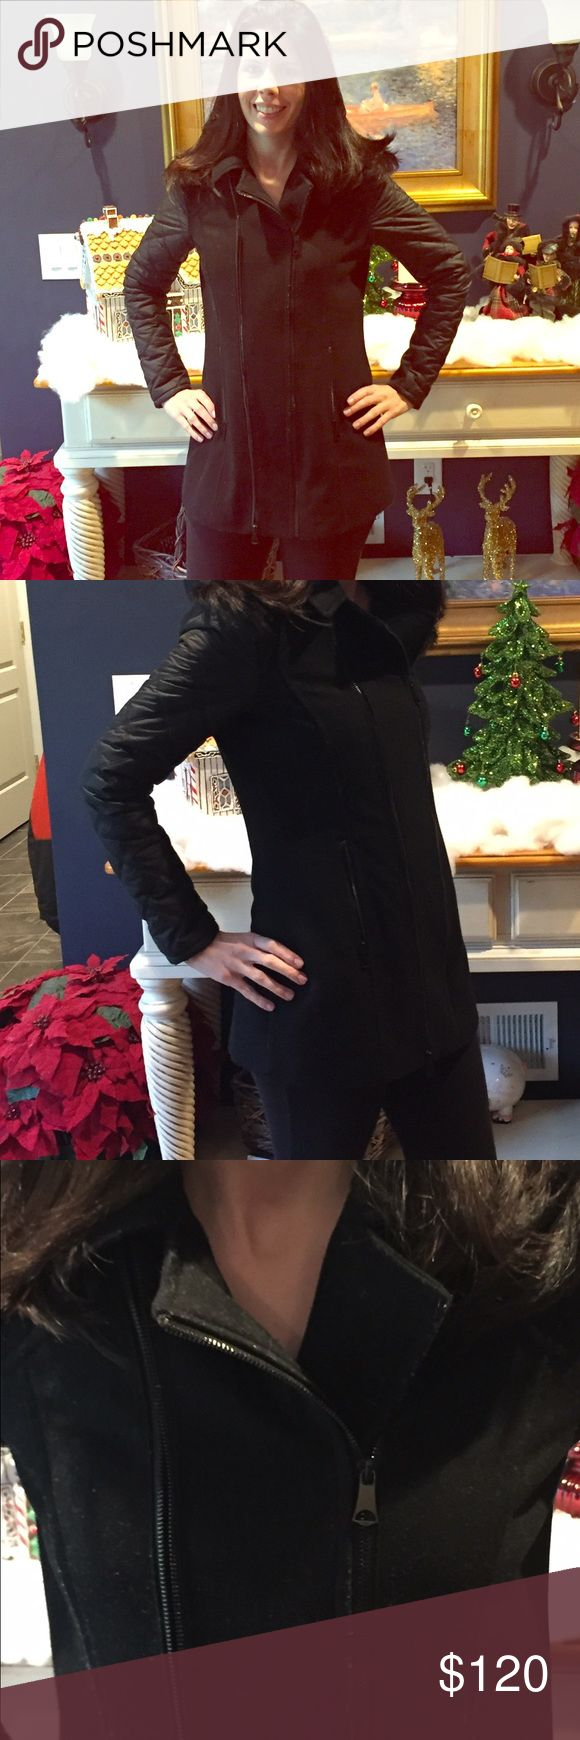 Andrew Marc Coat ! If you want more pics ask :) Great for Fall or mild winters. One year new. If you'd like more photos just ask :) Andrew Marc Jackets & Coats